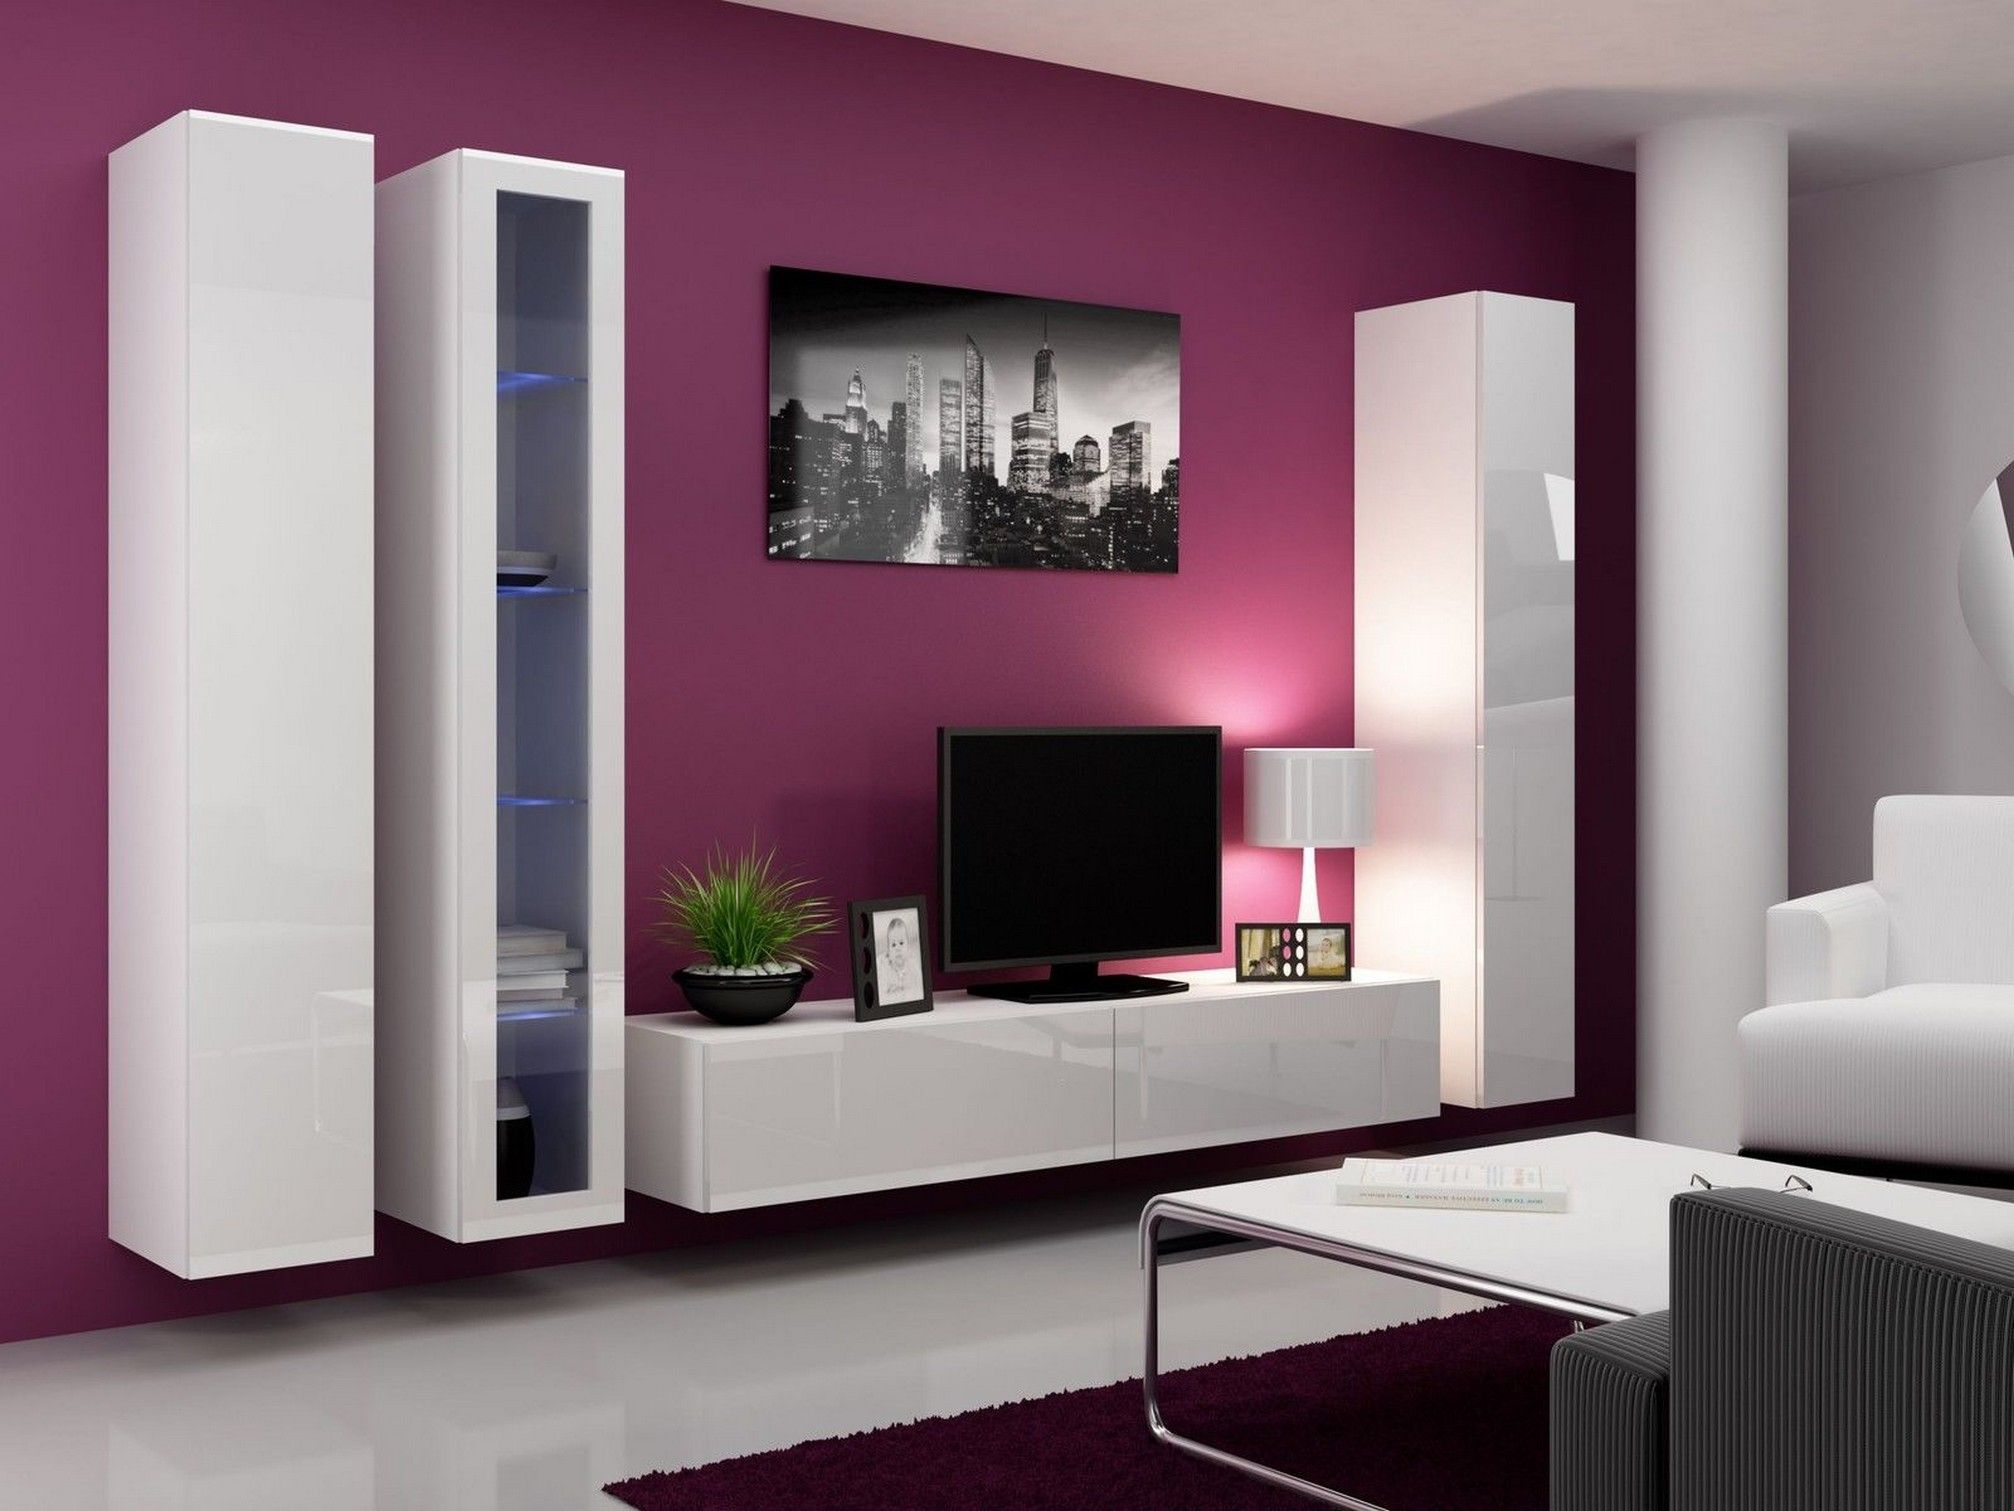 furniture interior contemporary white floating tv stands with media shelving attached violet wall color wall mounted - Media Wall Design